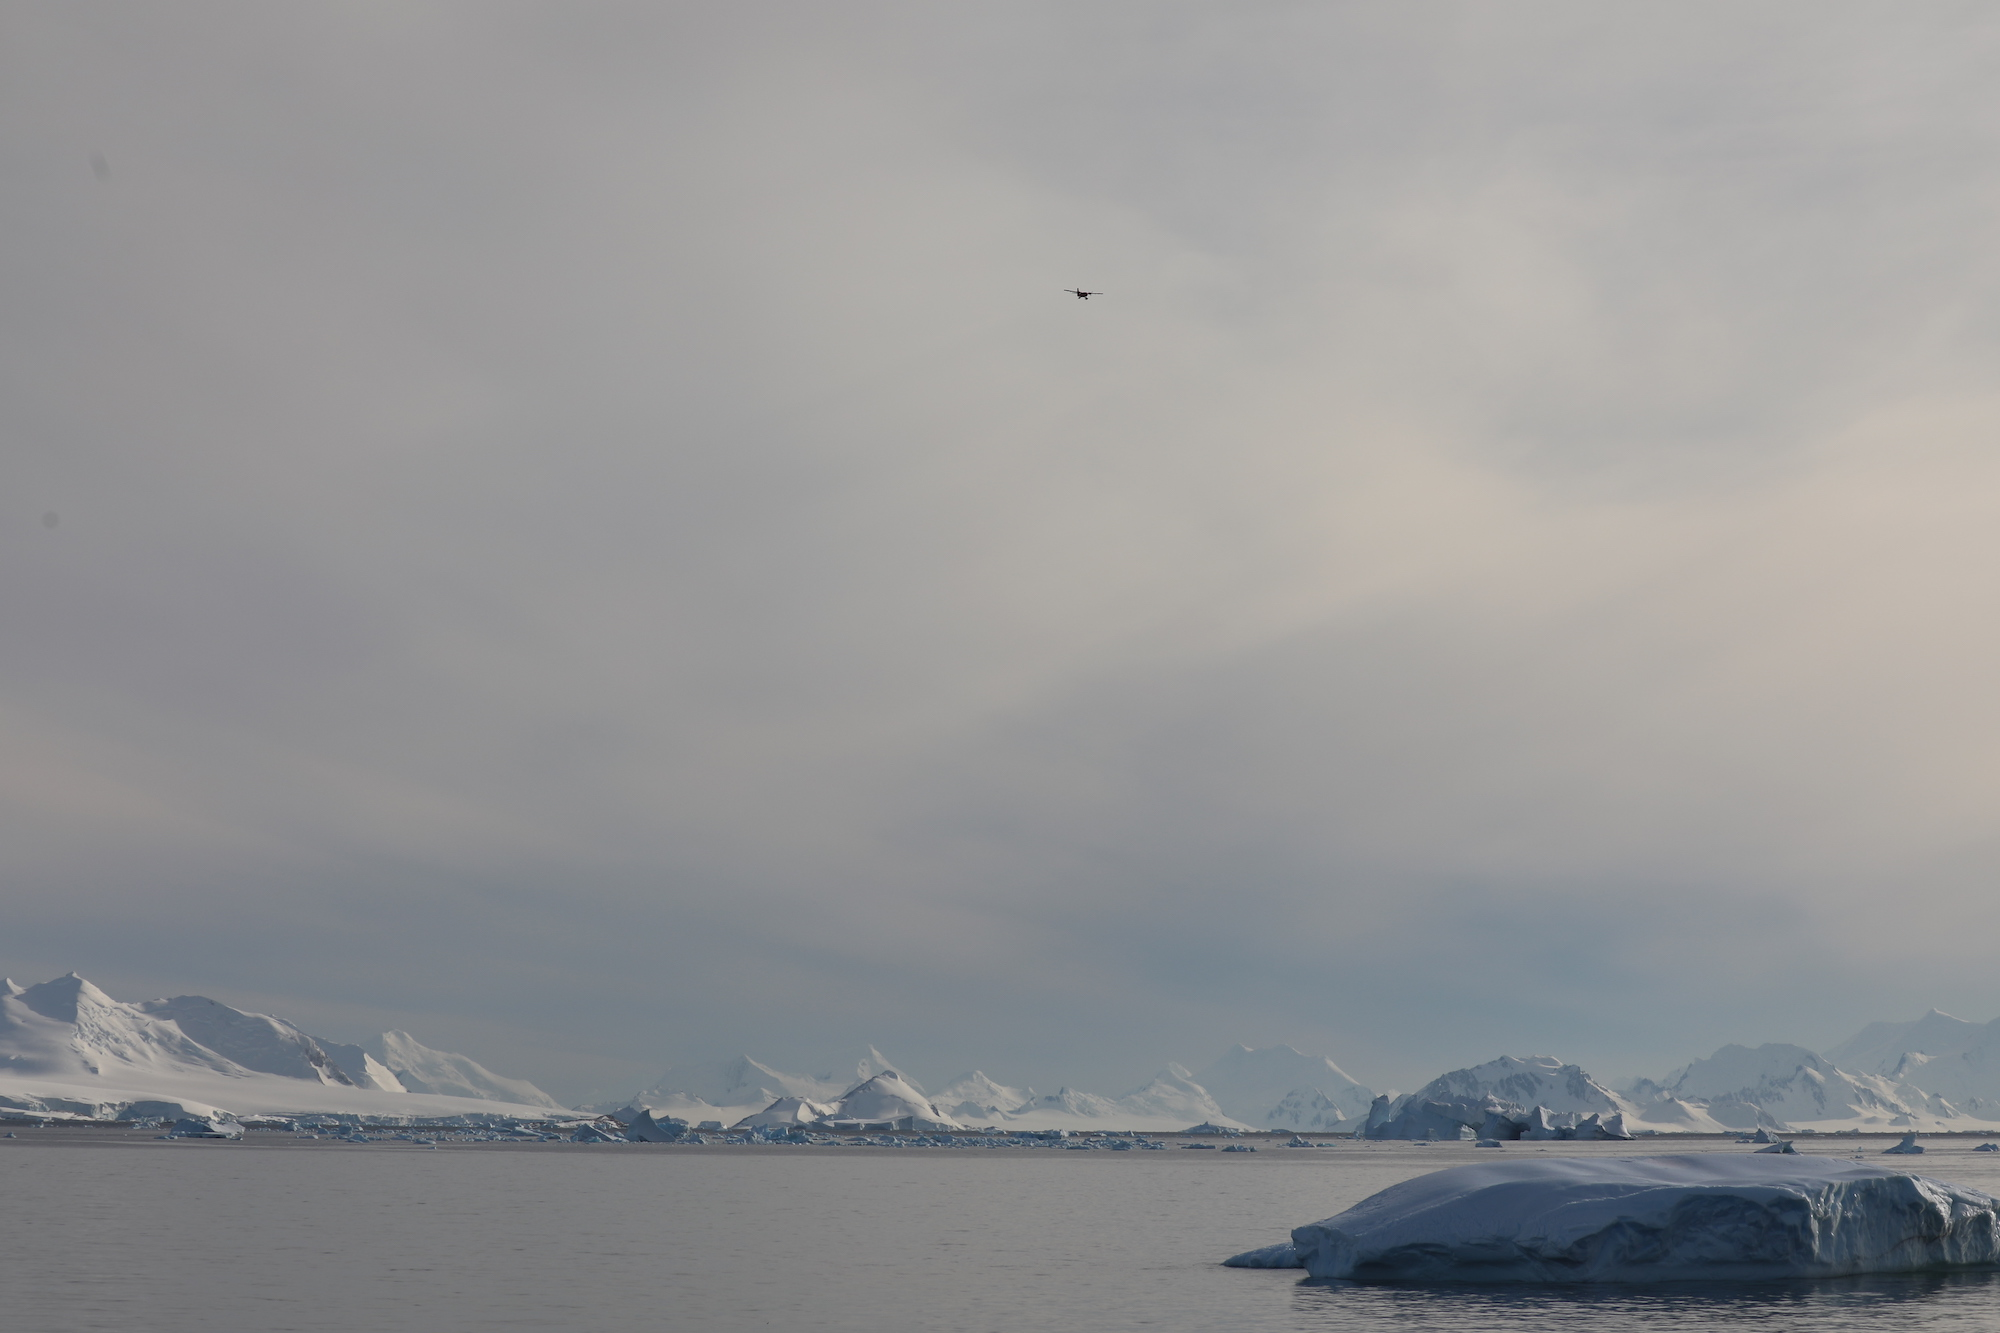 Twin Otter  inbound! These rugged aircraft are mainstays of Antarctic research.